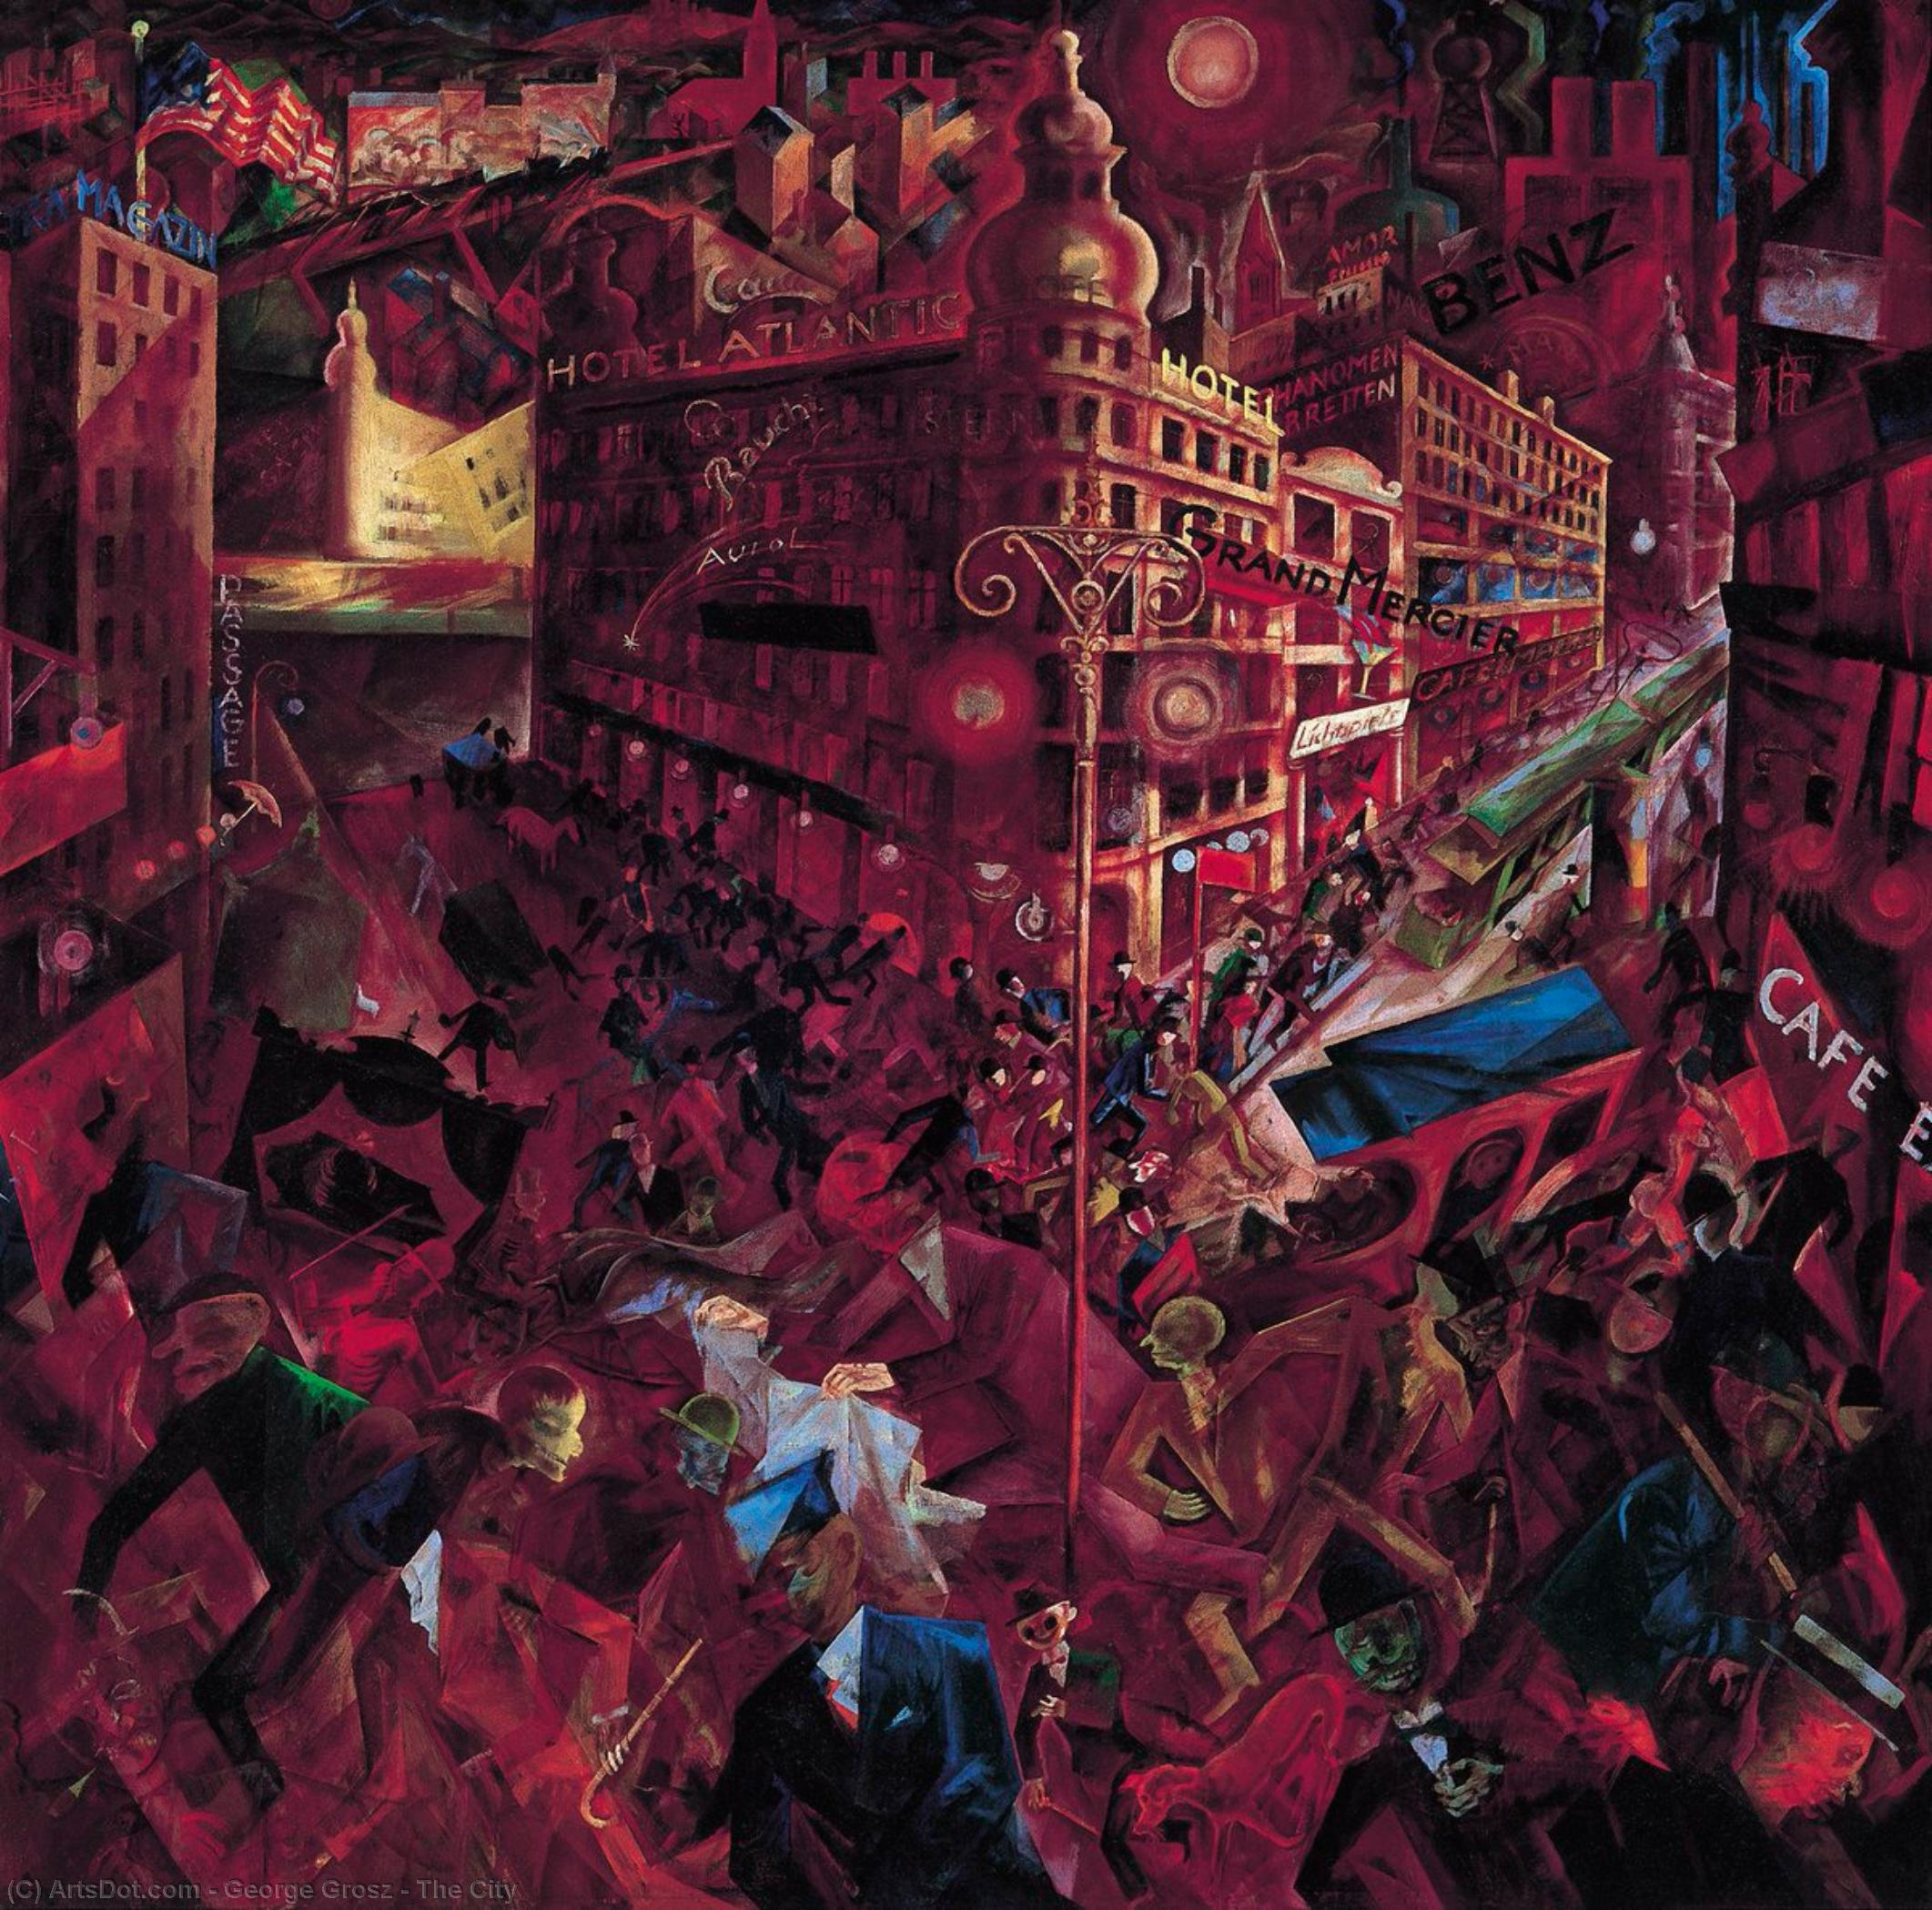 de la ville, 1917 de George Grosz (1893-1959, Germany) | Reproductions D'art De Musée | ArtsDot.com